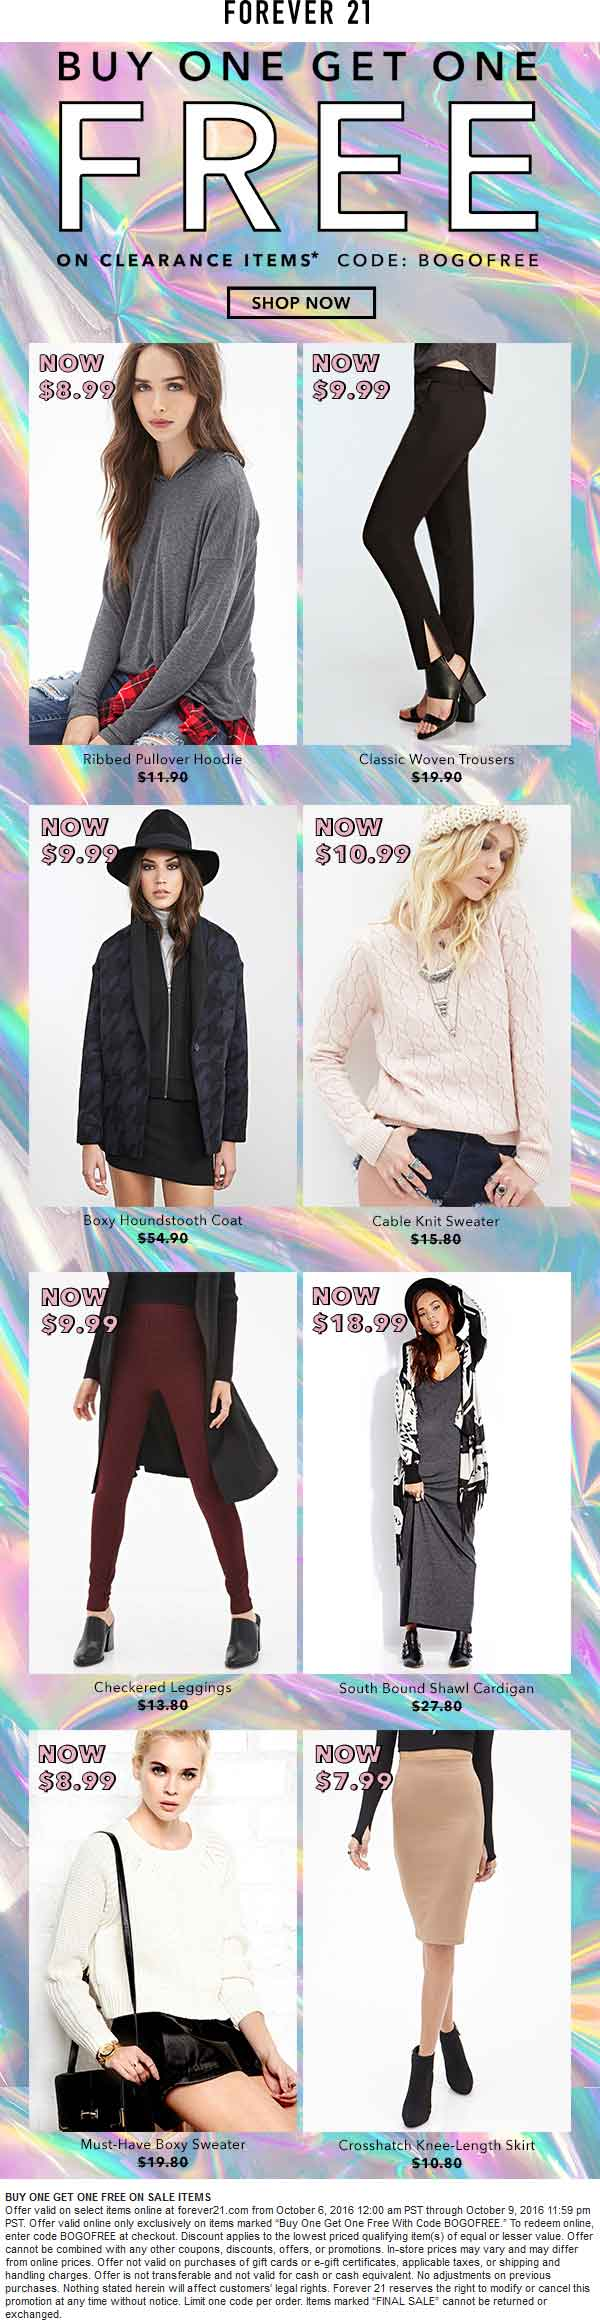 Forever21.com Promo Coupon Second clearance item free online at Forever 21 via promo code BOGOFREE